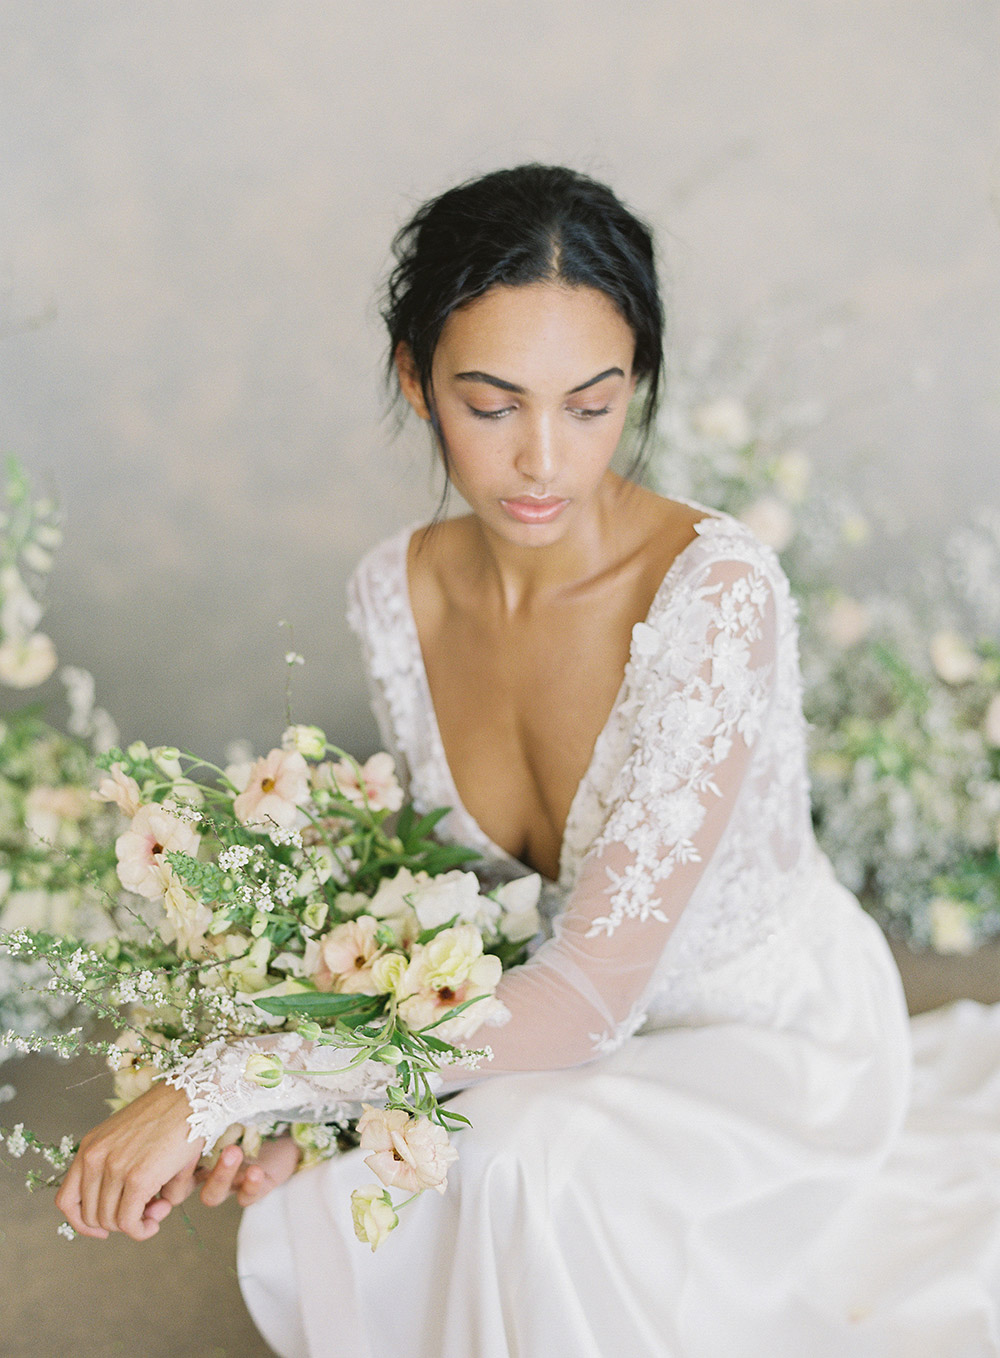 Santorini – Claire Pettibone Spring 2019 Bridal Collection. www.theweddingnotebook.com